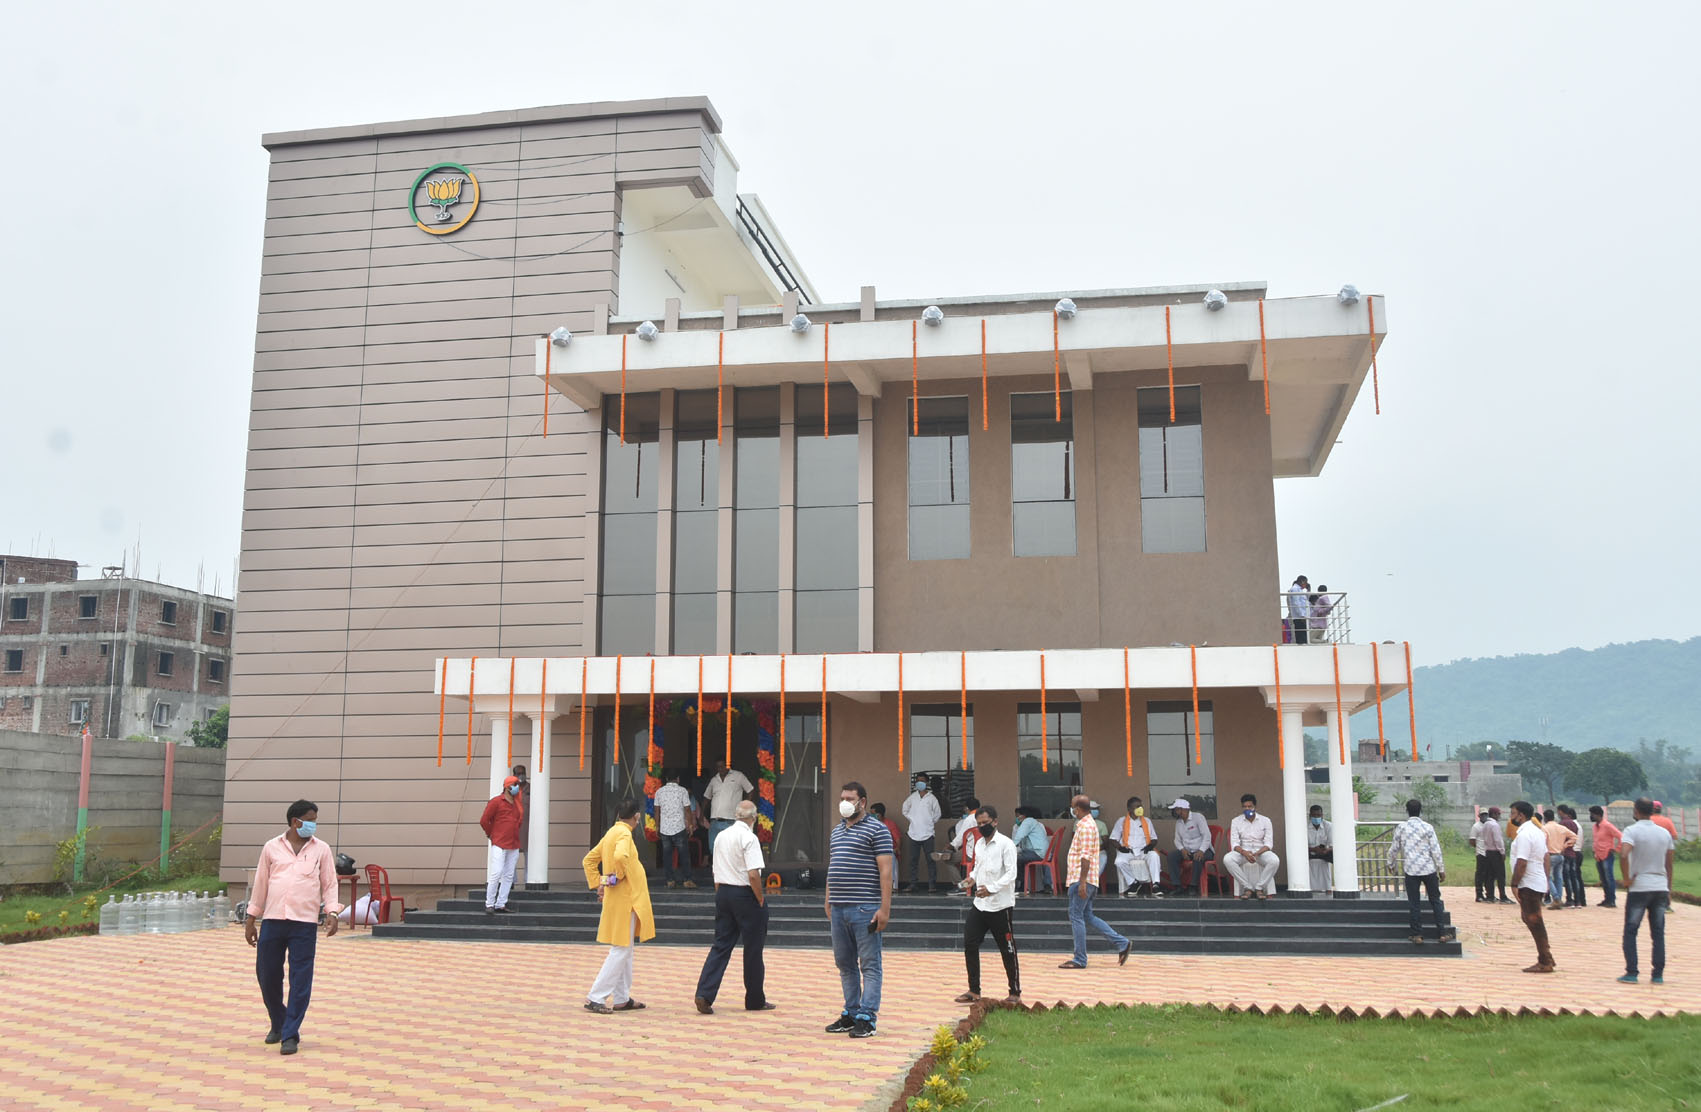 The new BJP office at Baliapur Road that was inaugurated in Dhanbad on Tuesday